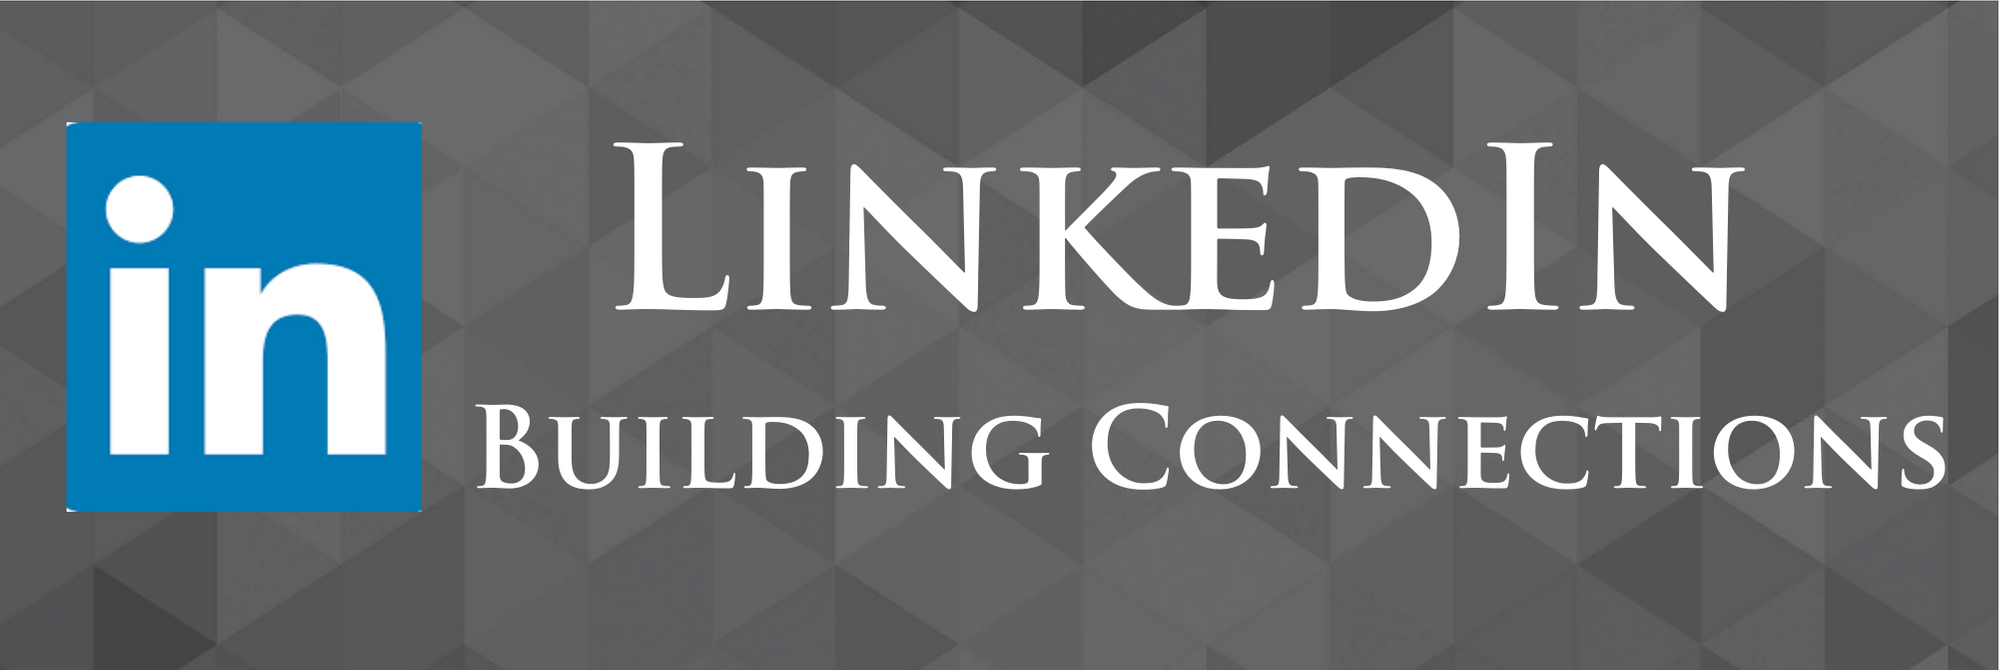 Build valuable connections on LinkedIn